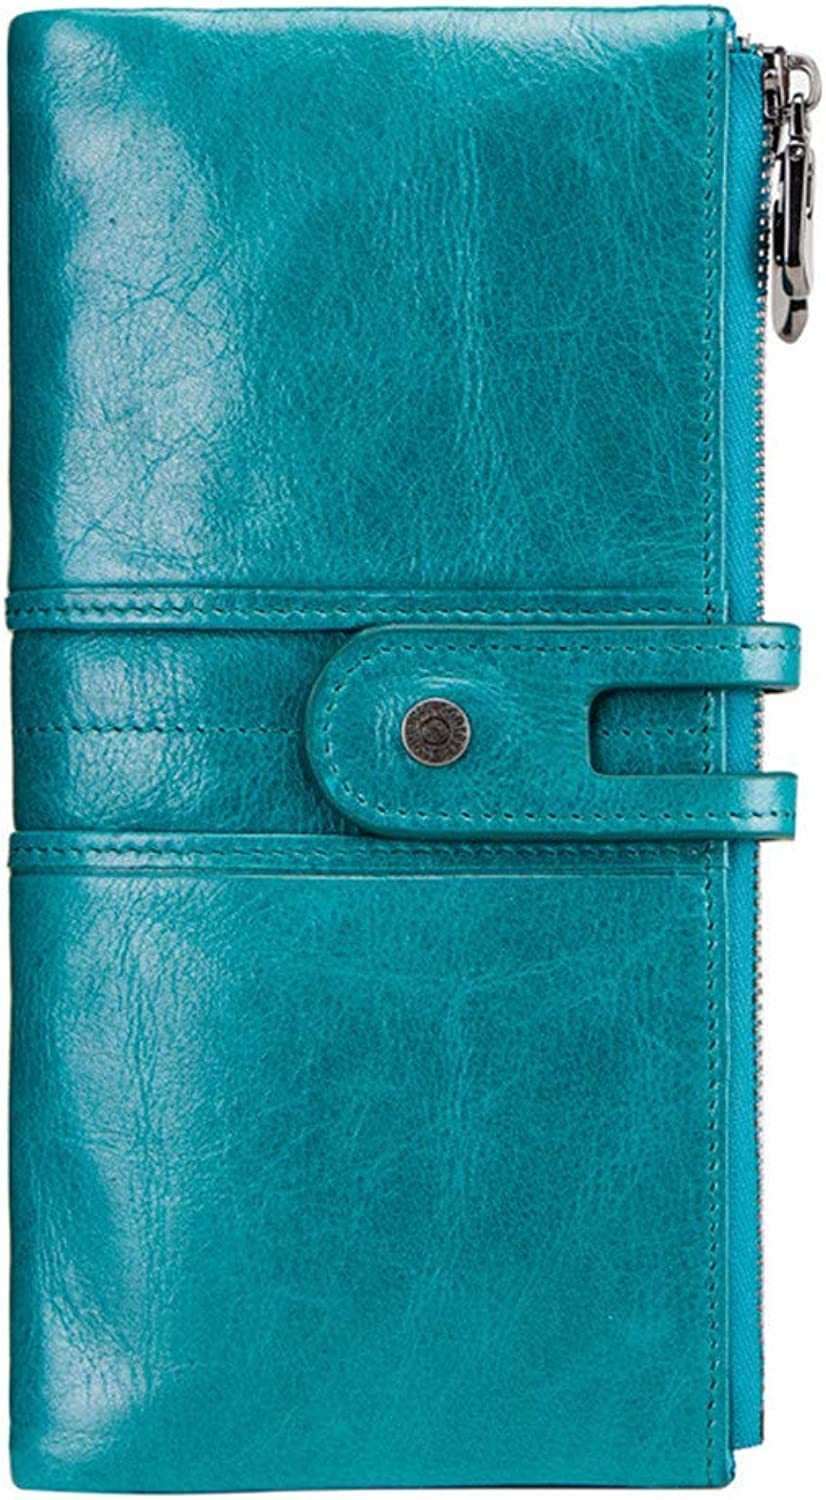 Women's Wallet Genuine Leather Wallets Multifunction Long Wallet Large Capacity Clutch,for Card Holder,19.5  3  9.5cm